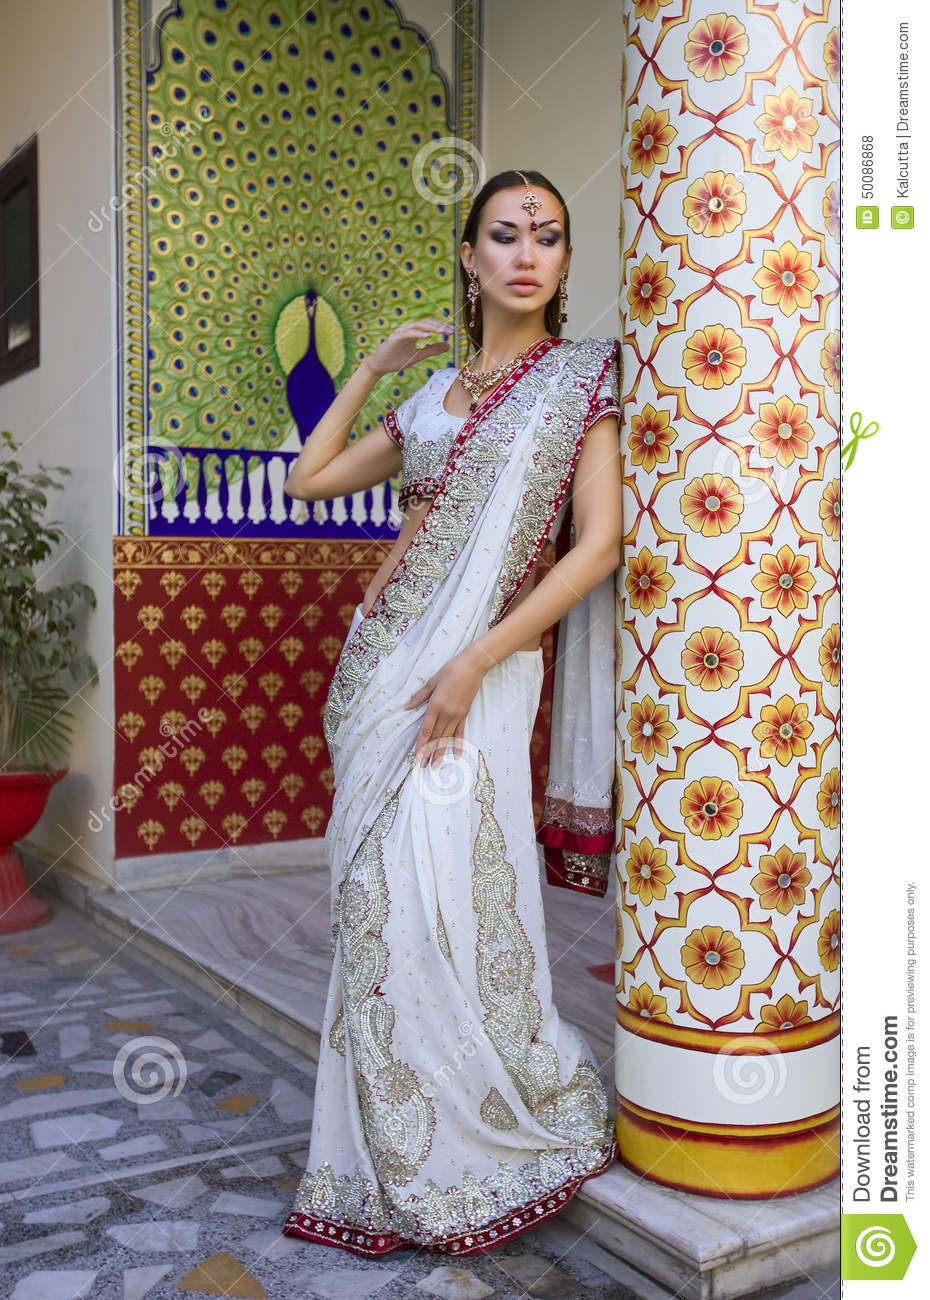 cabbf22562 Beautiful Young Indian Woman In Traditional Clothing With Bridal ...